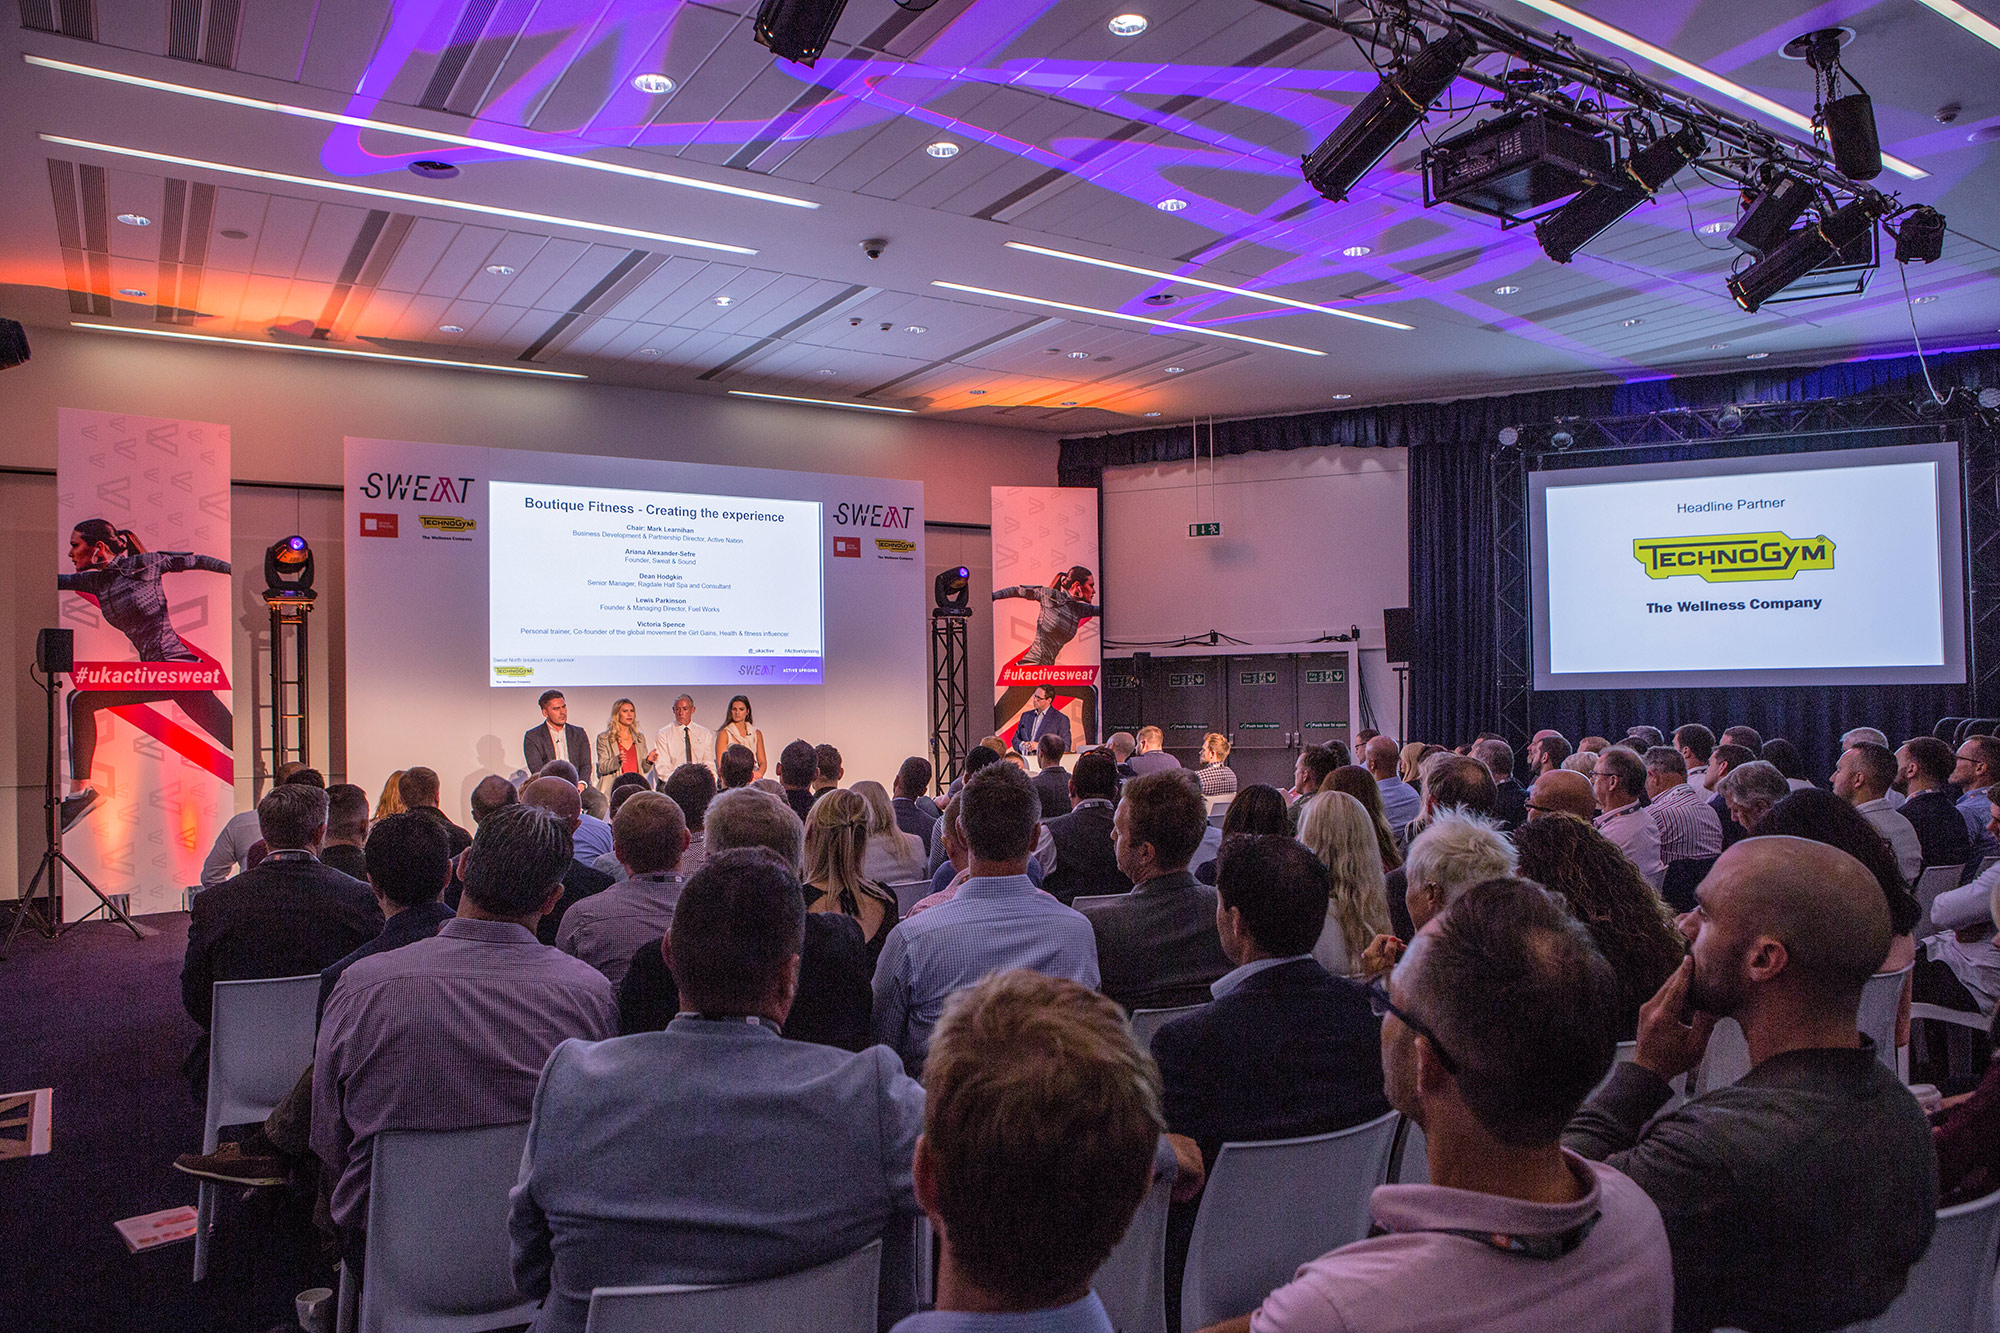 ukactive unveils additional speakers as part of expanded Active Uprising agenda